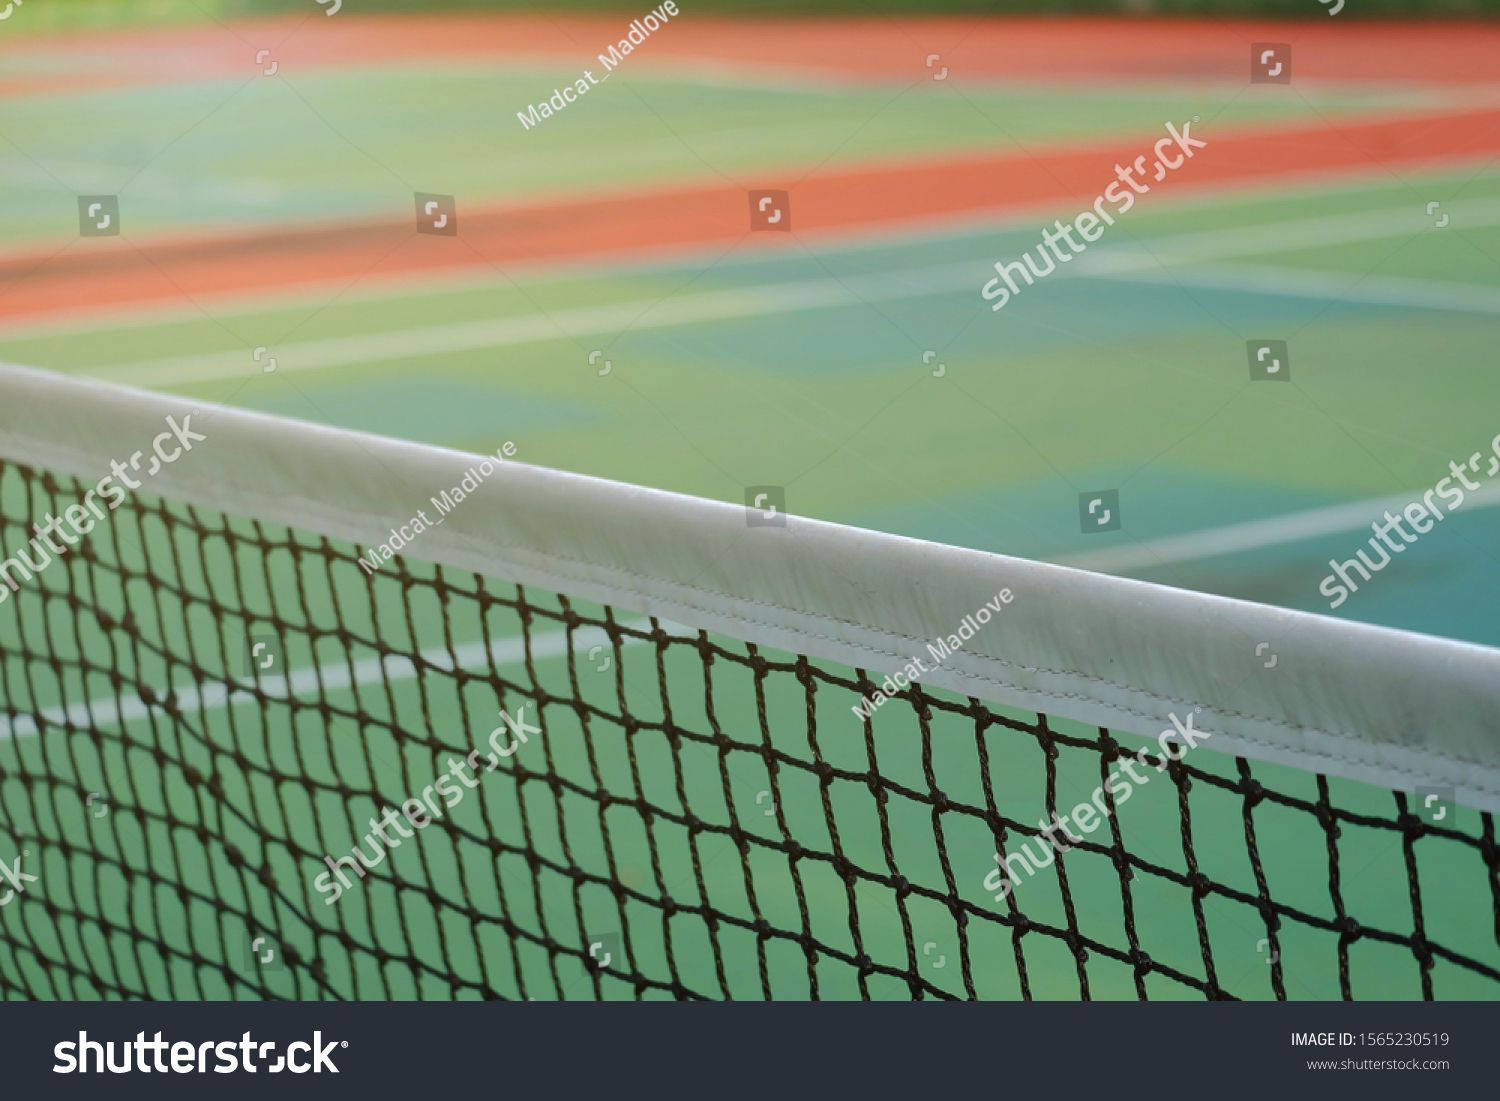 Close Up Net At Tennis Court Sport Wallpaper Background Relaxation And Lifestyle Concept Ad Aff Court Sport Tennis Sports Wallpapers Tennis Court Court